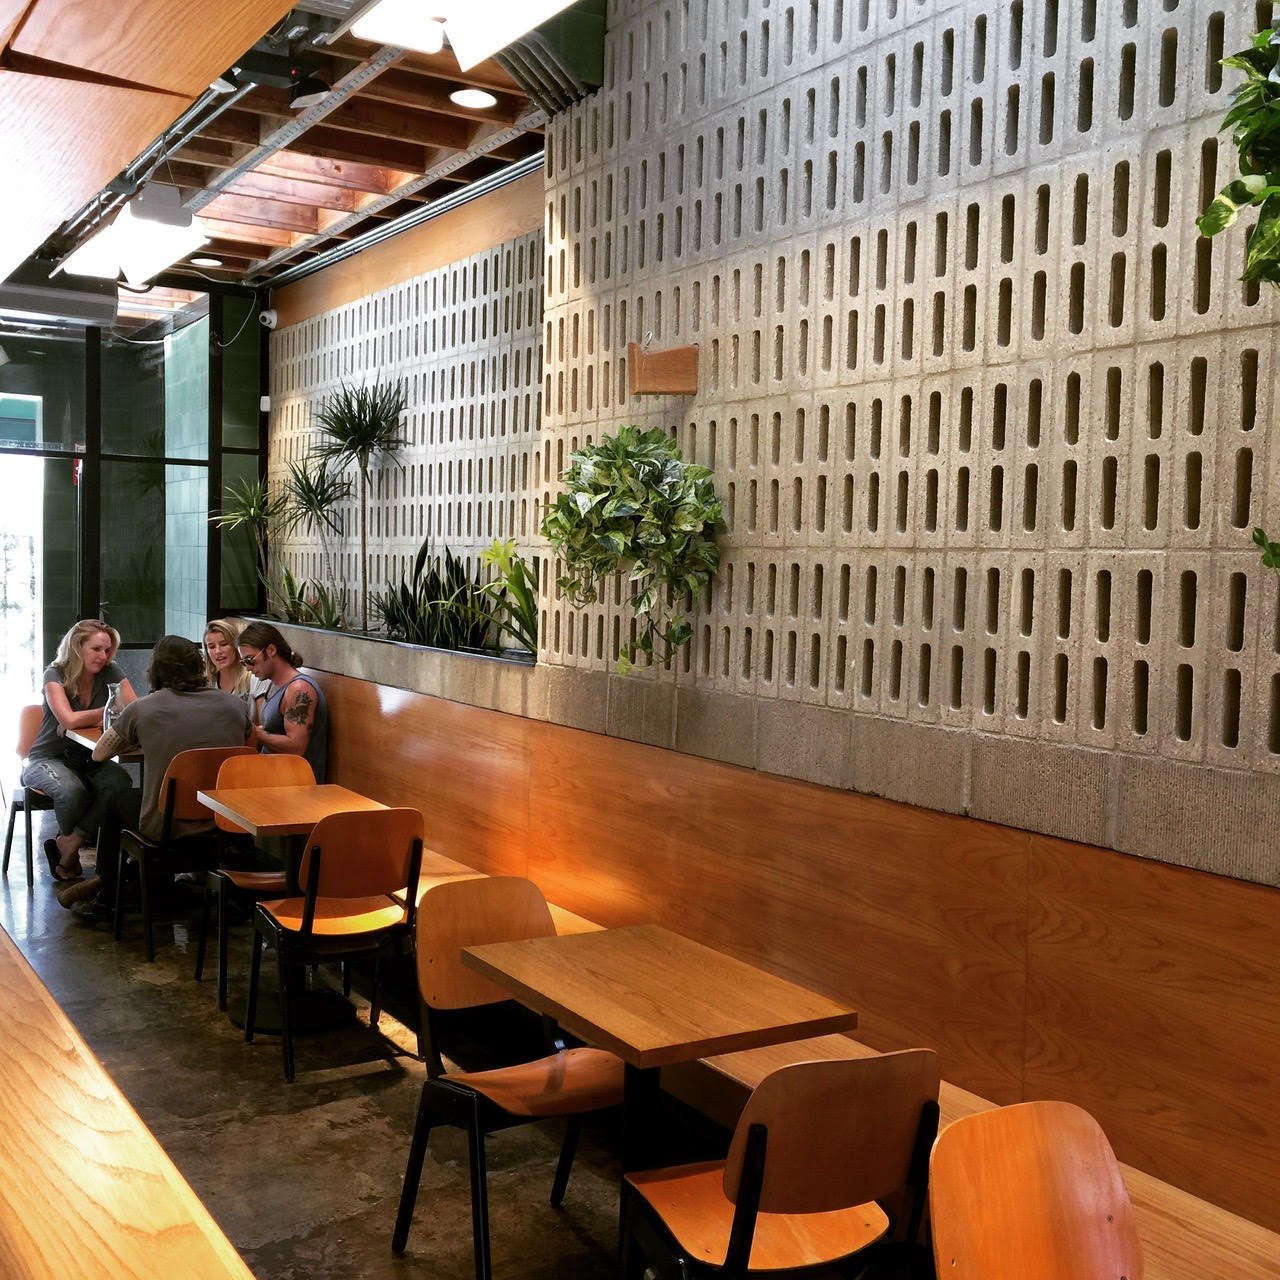 ceiling shelving ideas - Restaurant Visit Concrete and Green at an Australian Cafe